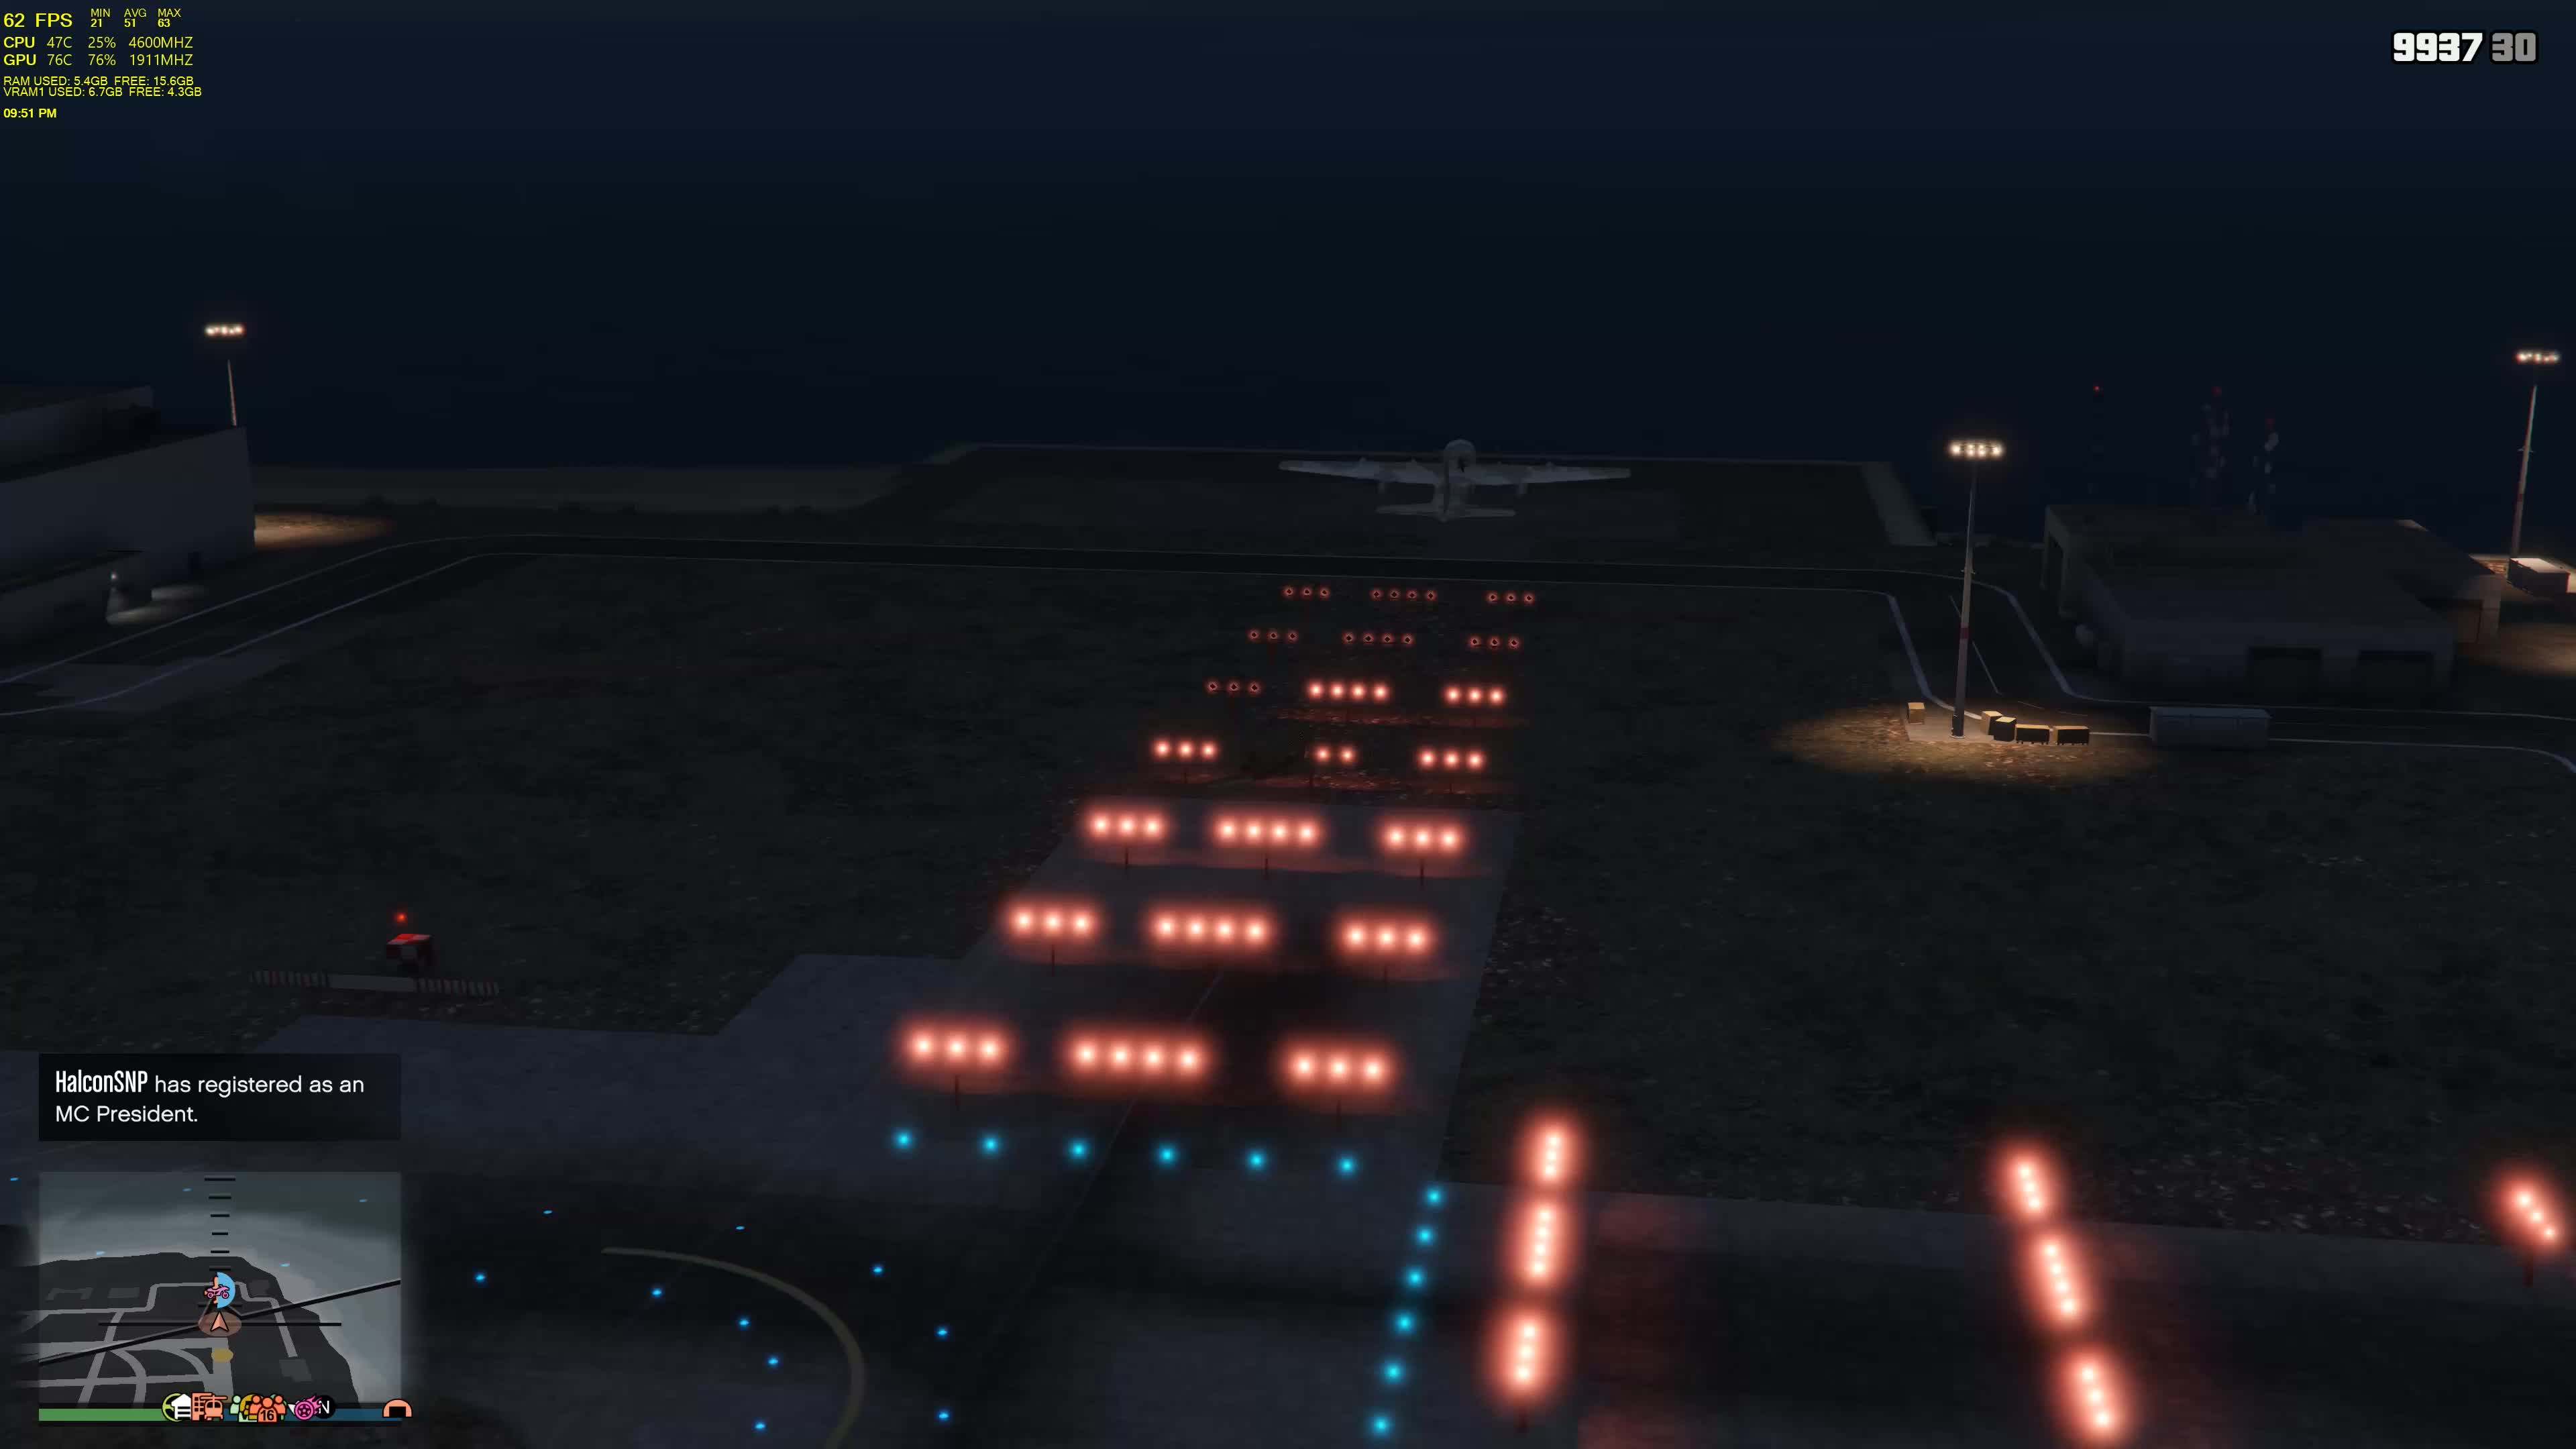 GTAV planeception GIFs